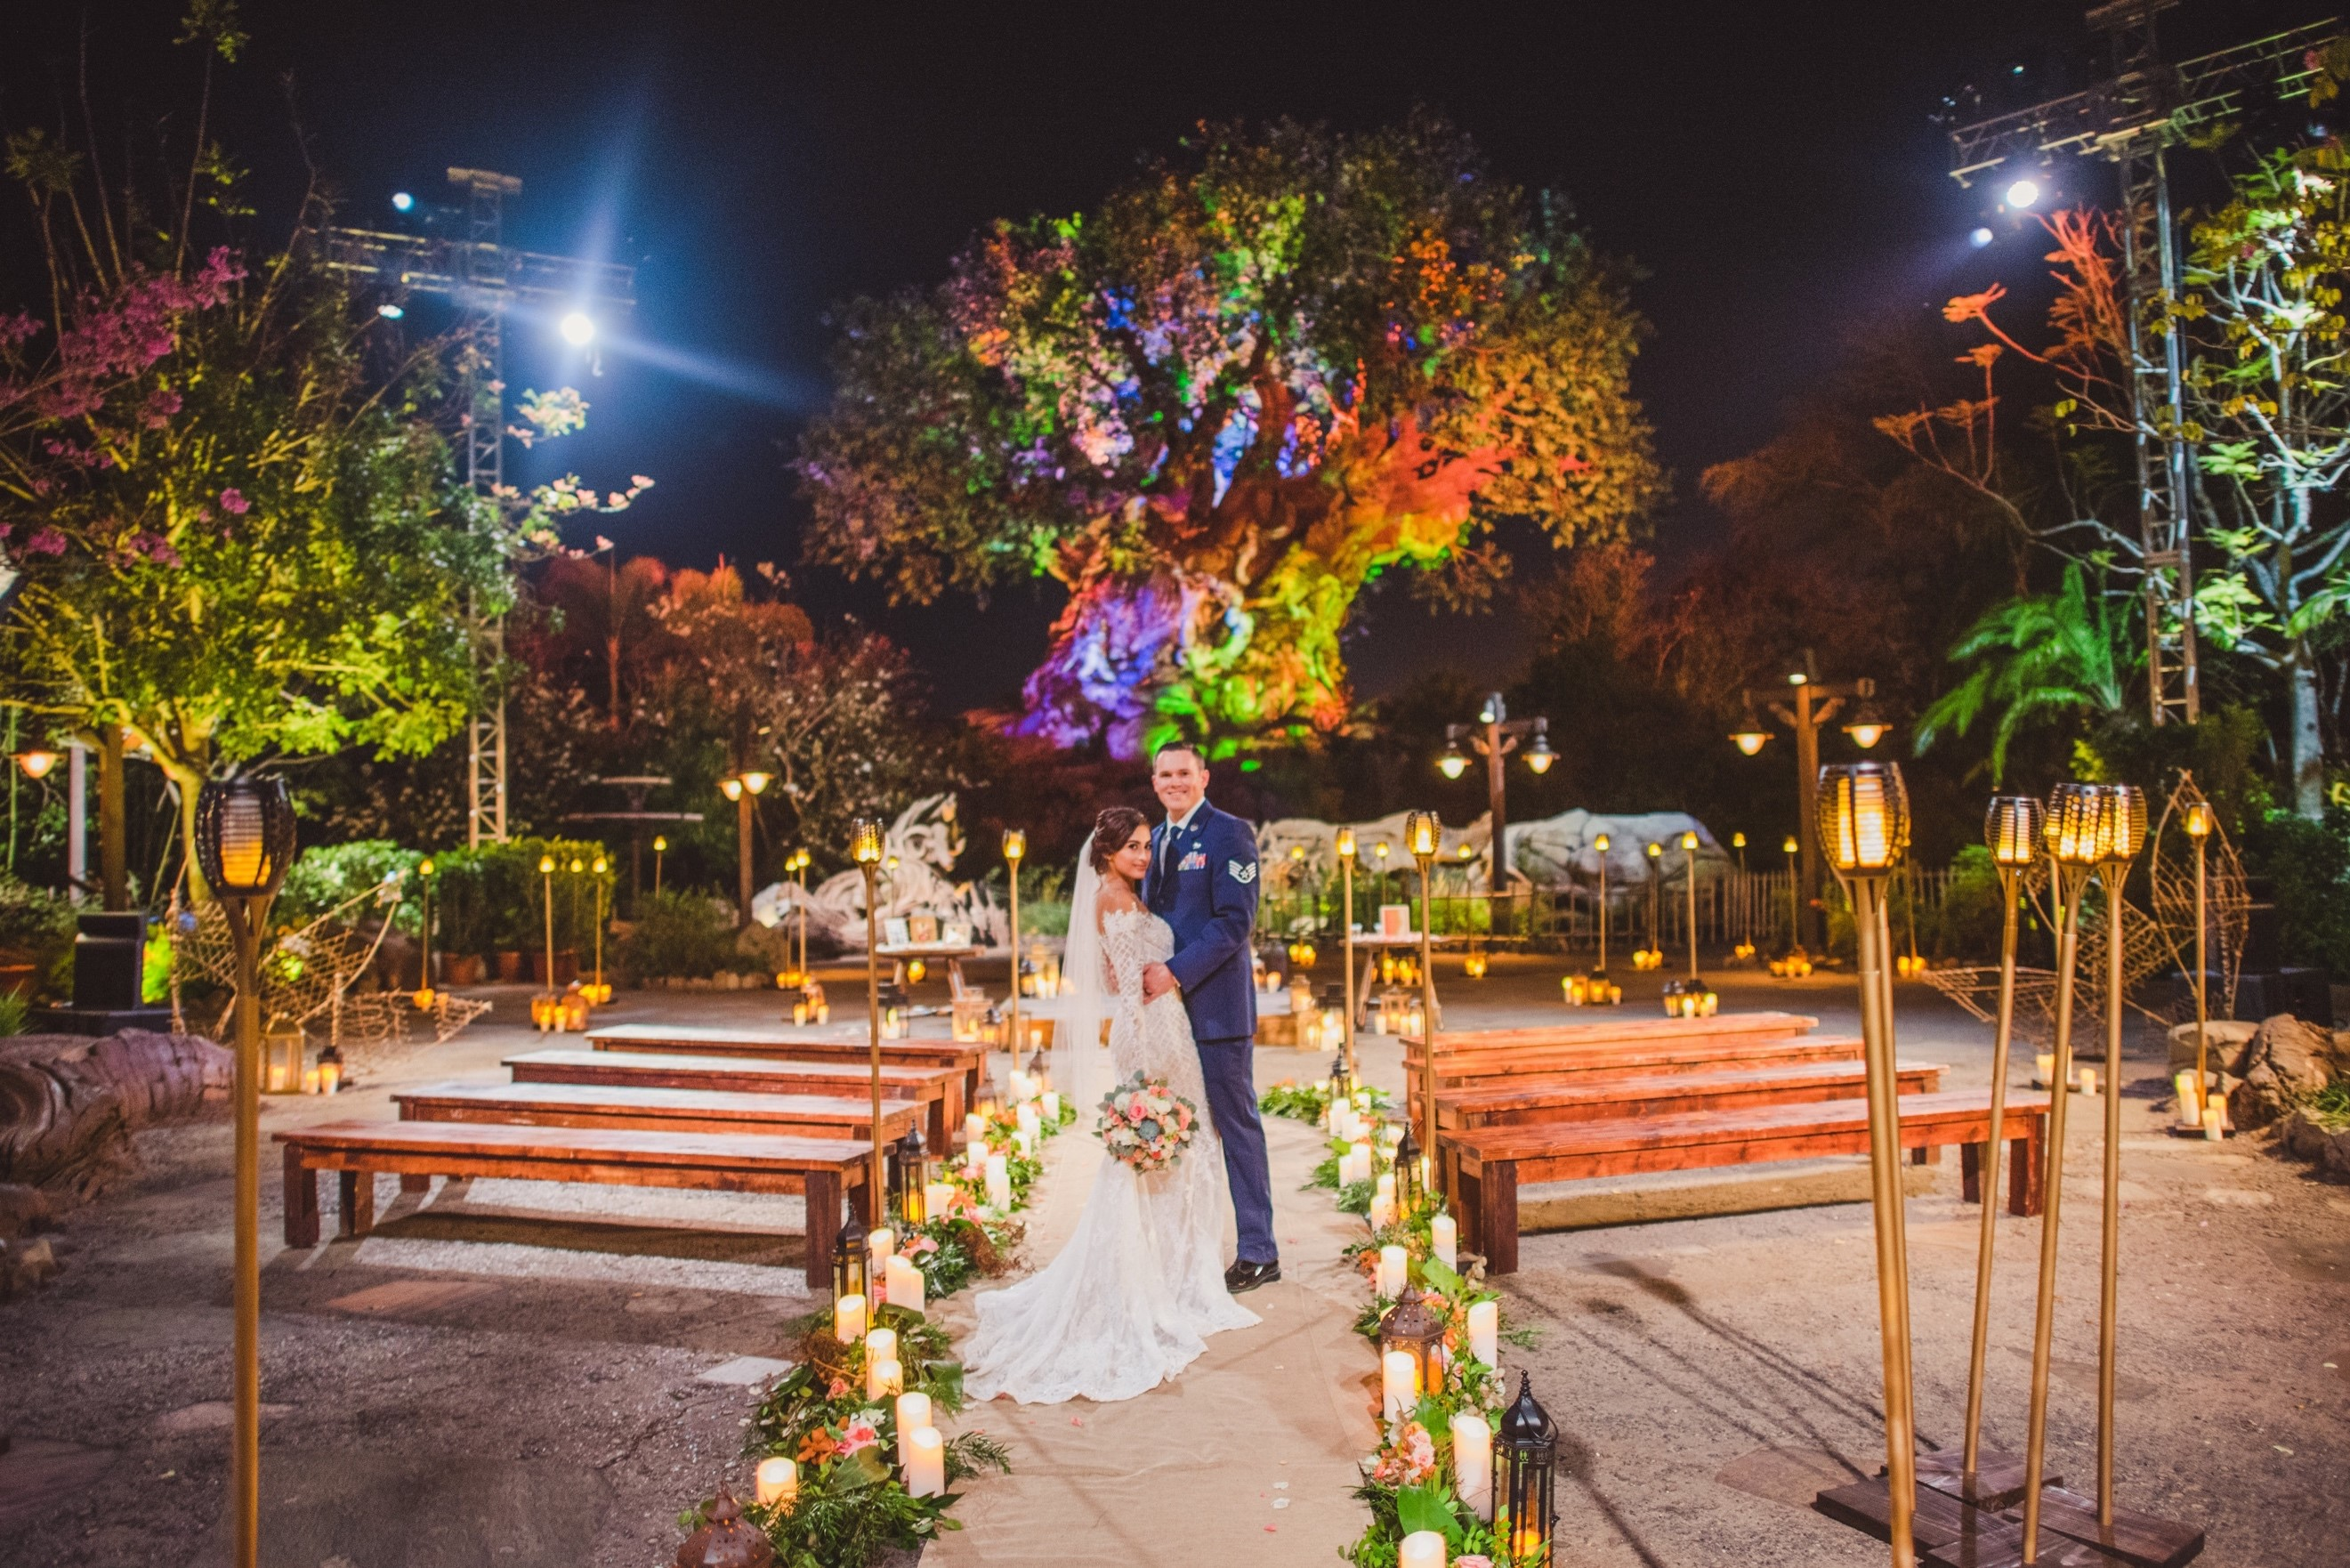 Disney's Fairy Tale Weddings Now Available in Front of Tree of Life at Disney's Animal Kingdom